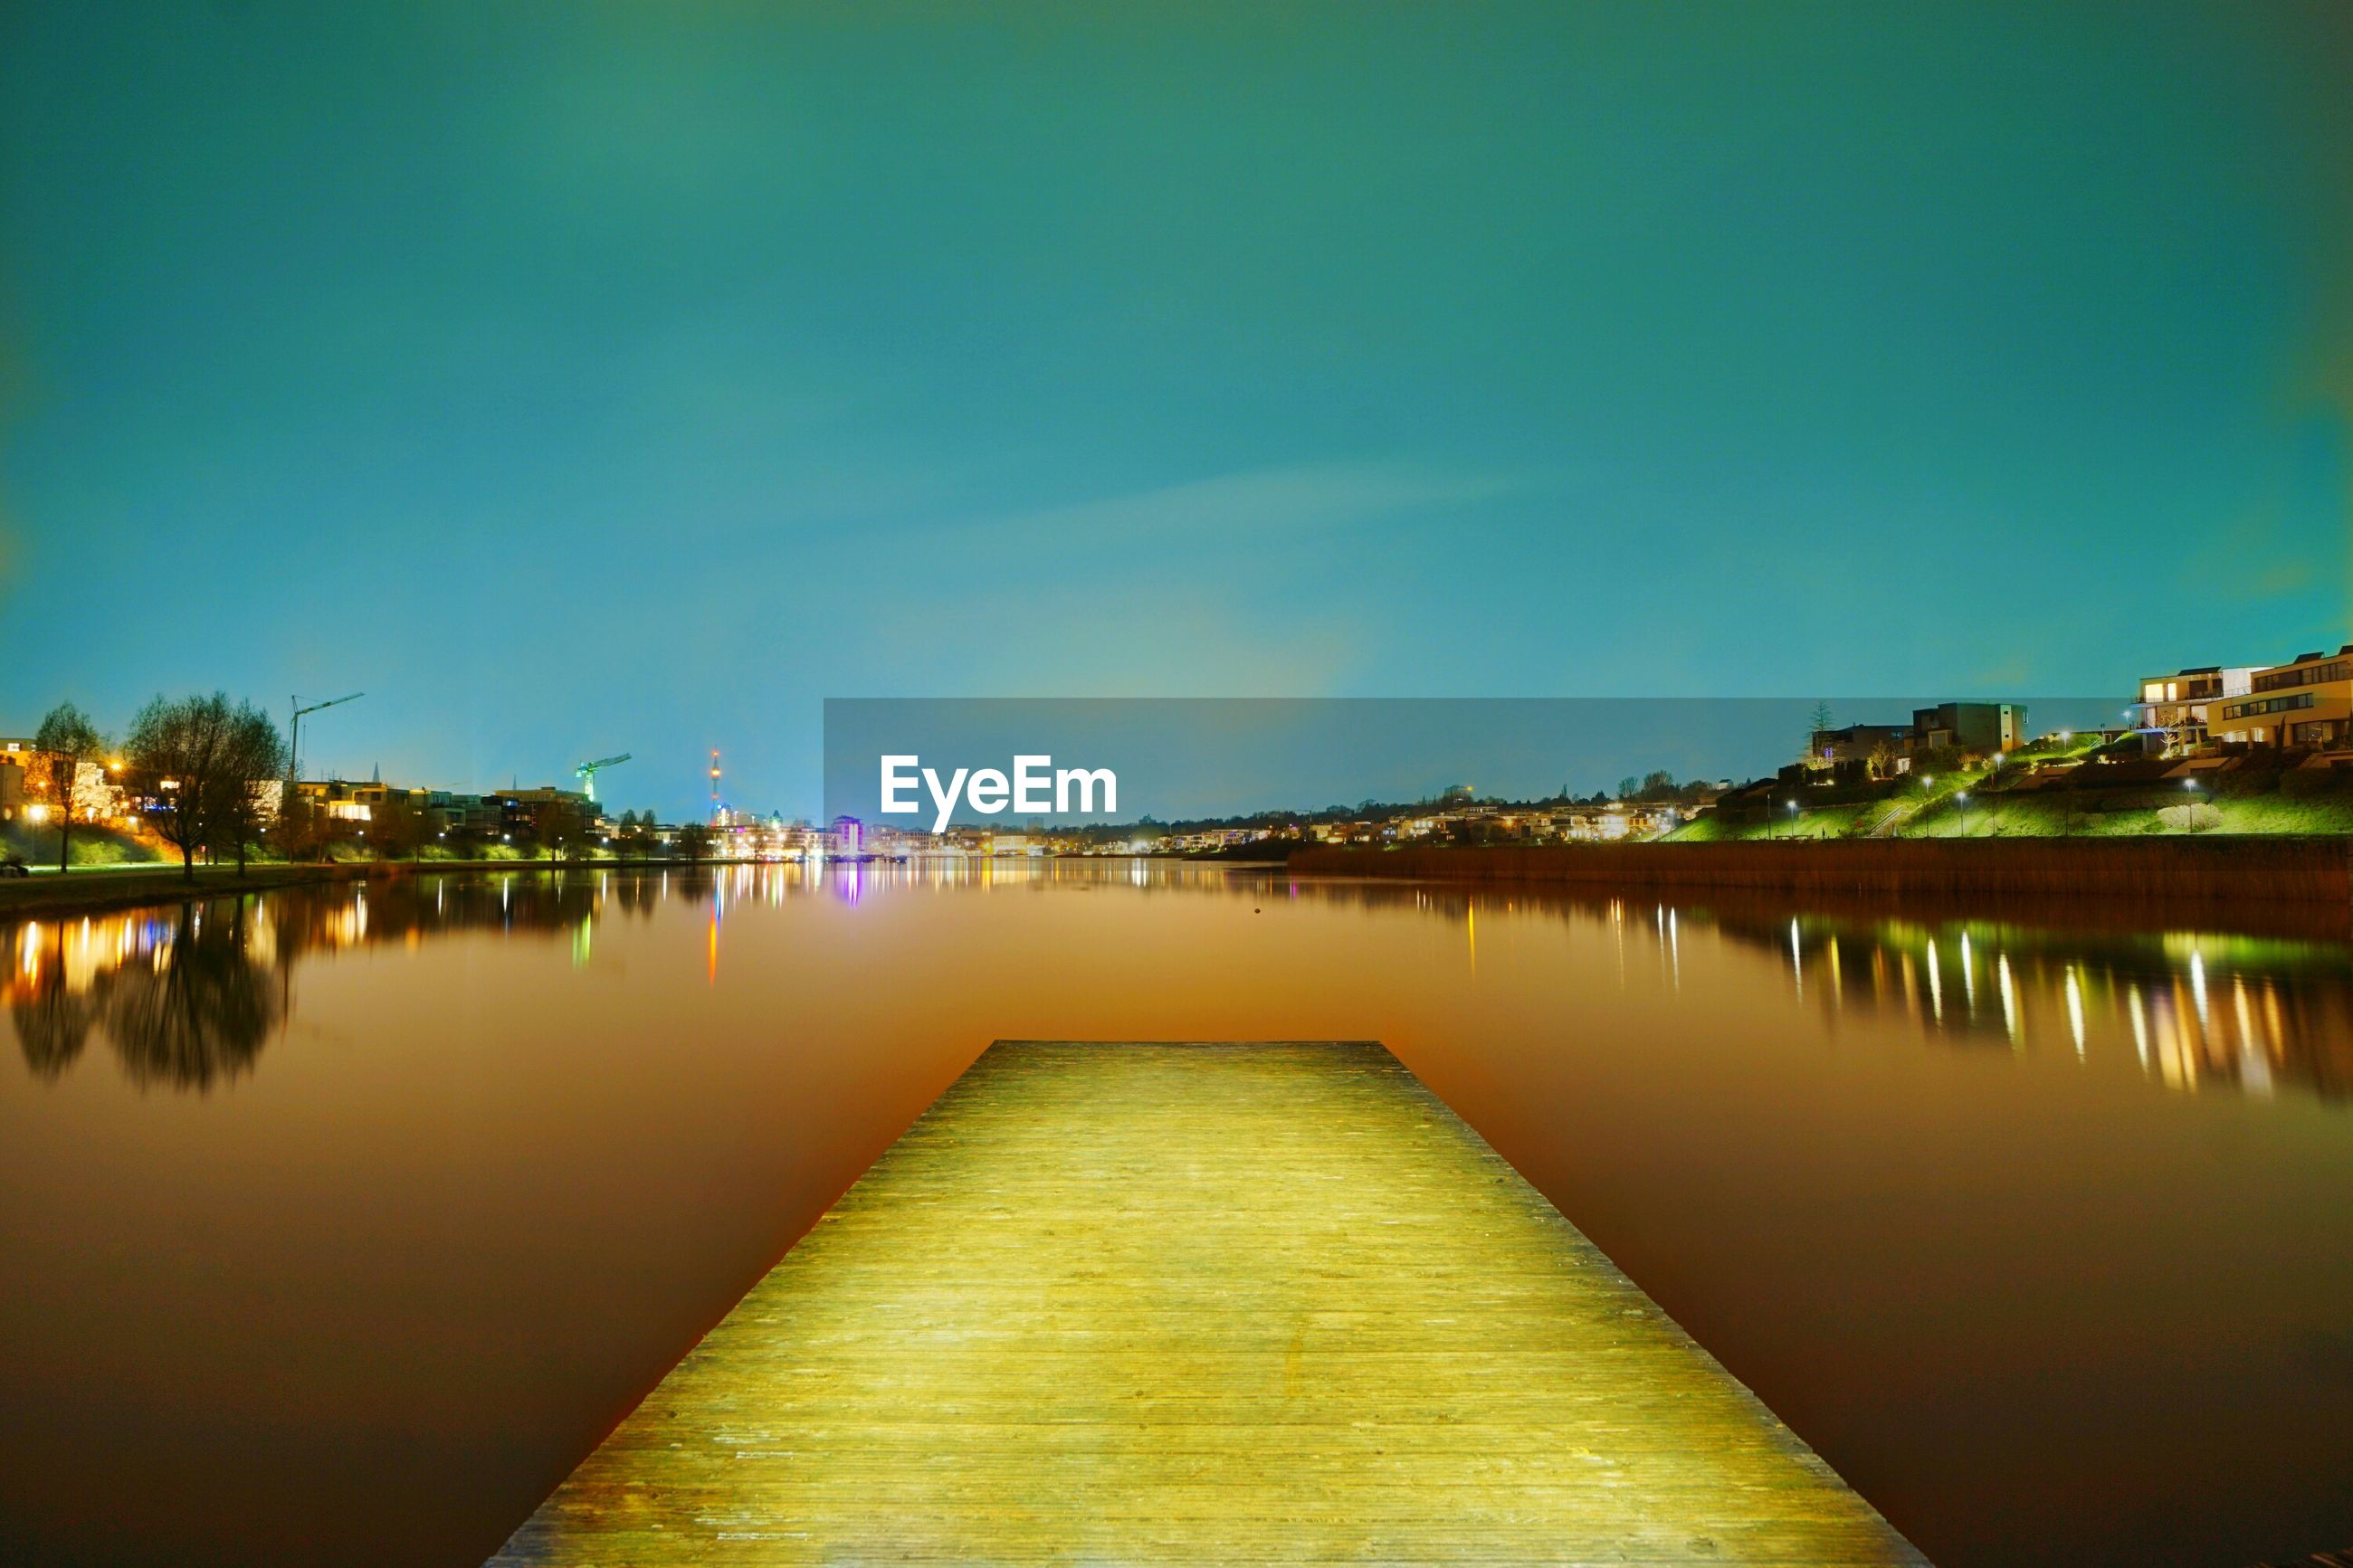 SCENIC VIEW OF RIVER BY ILLUMINATED CITY AGAINST SKY